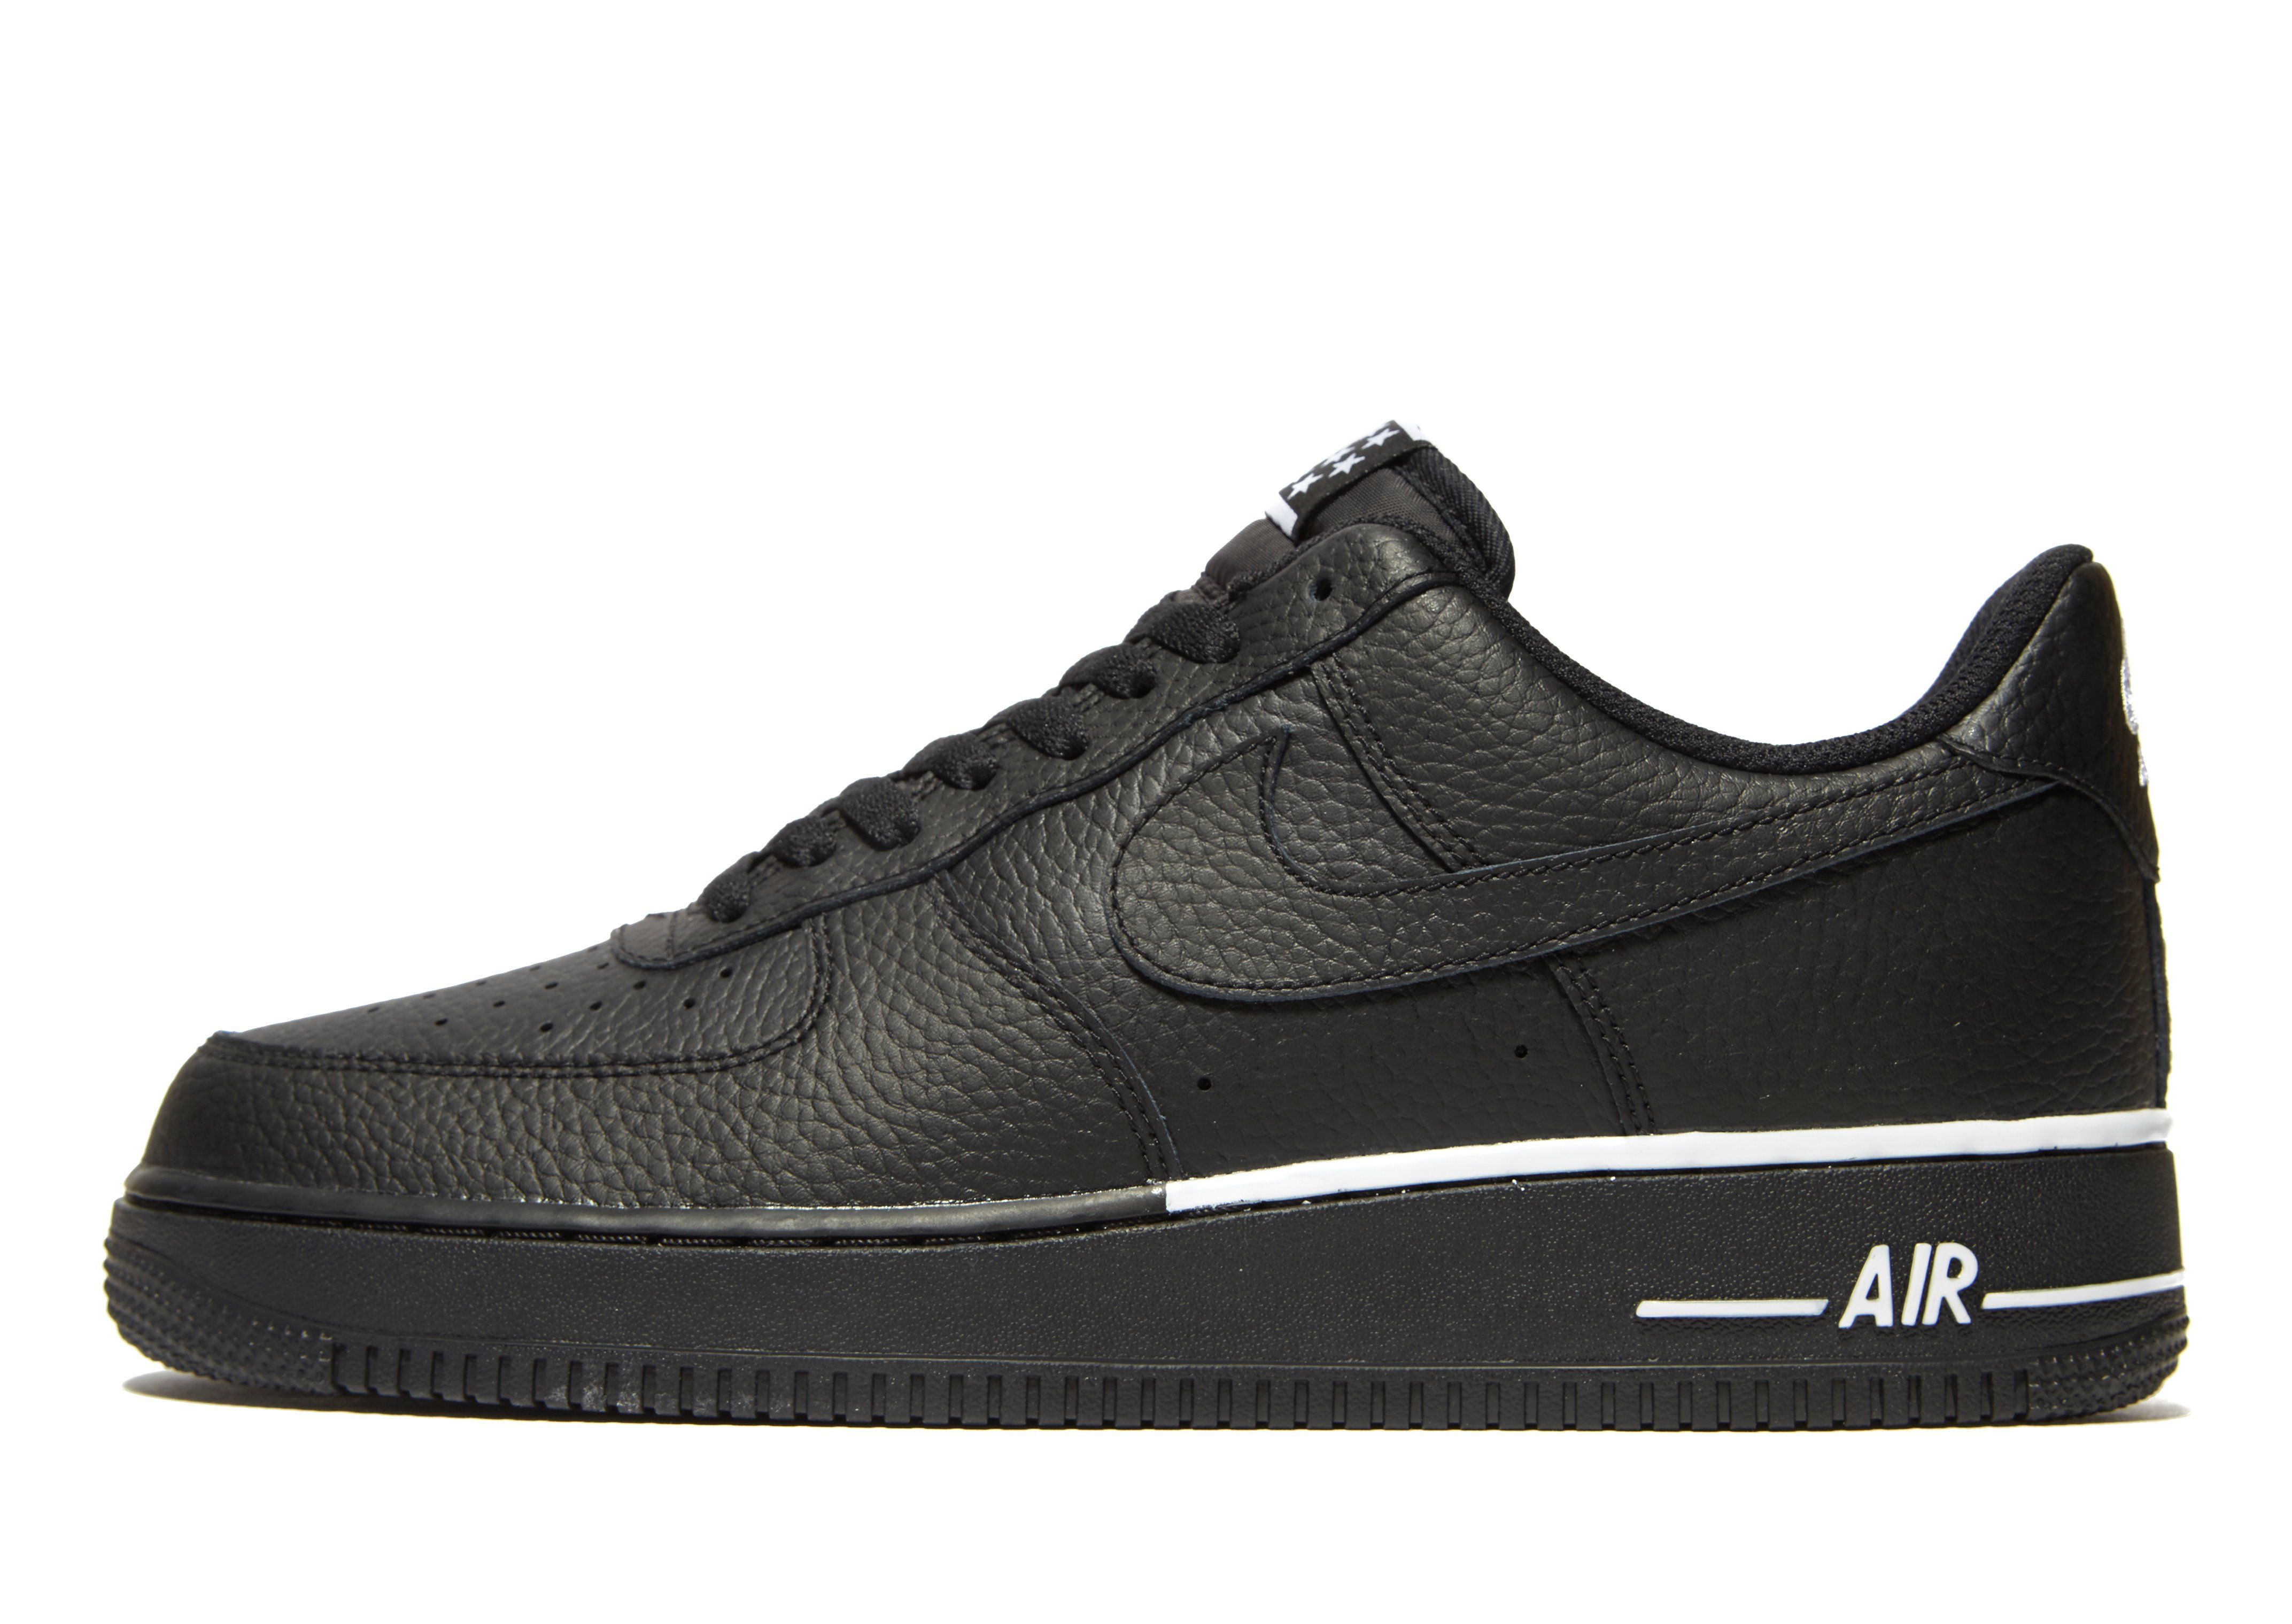 timeless design 4a54e c88a5 Nike Air Force 1 Low Herre  JD Sports